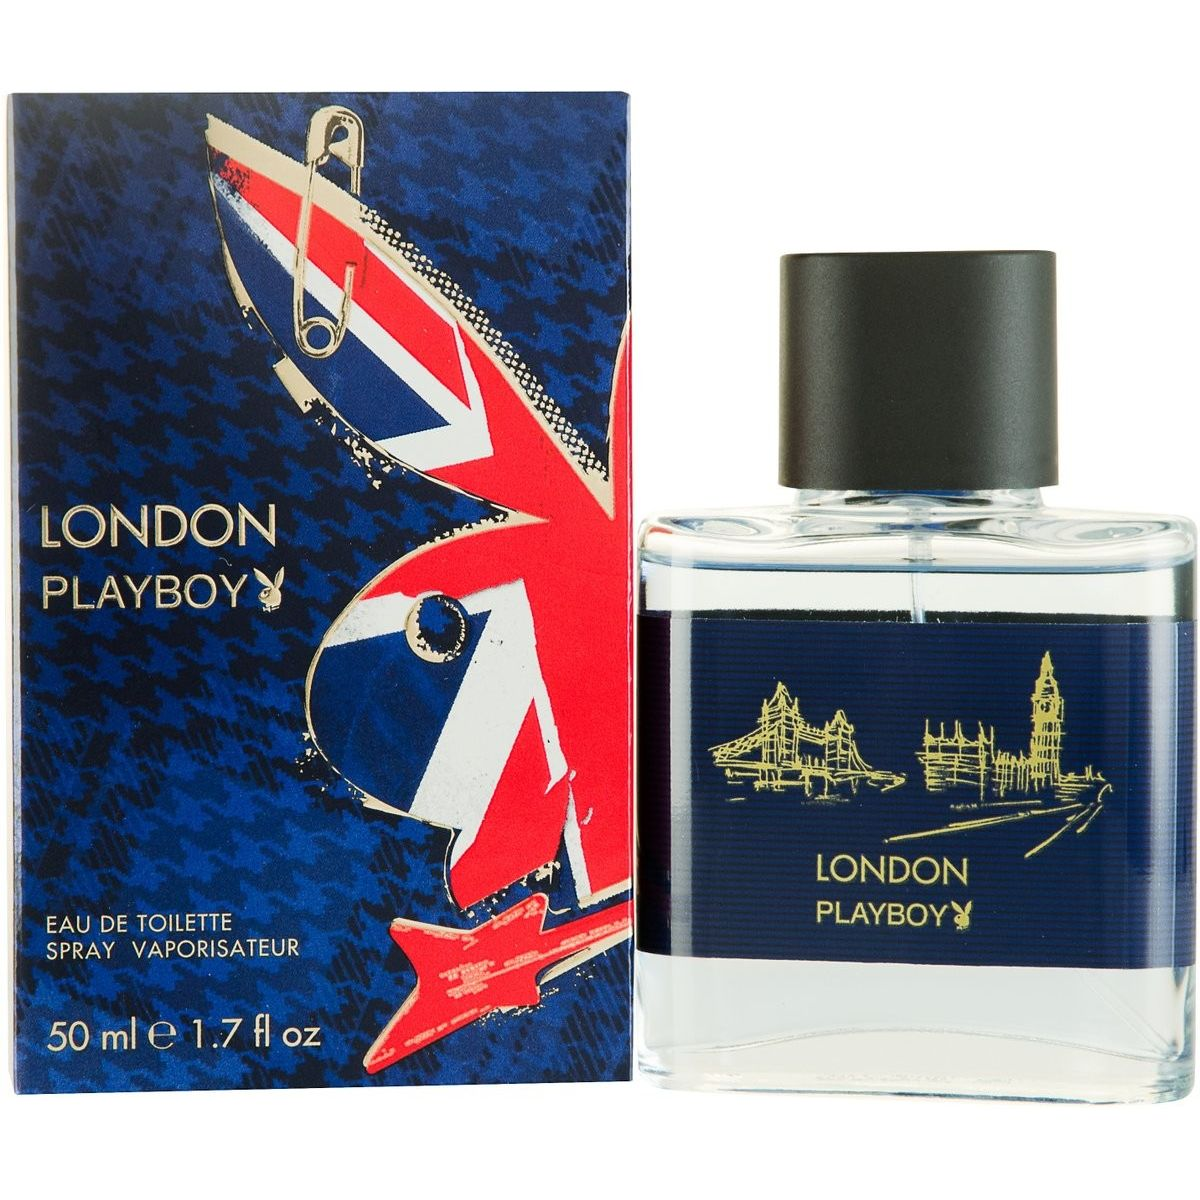 Playboy London Eau de Toilette 50 ml Spray